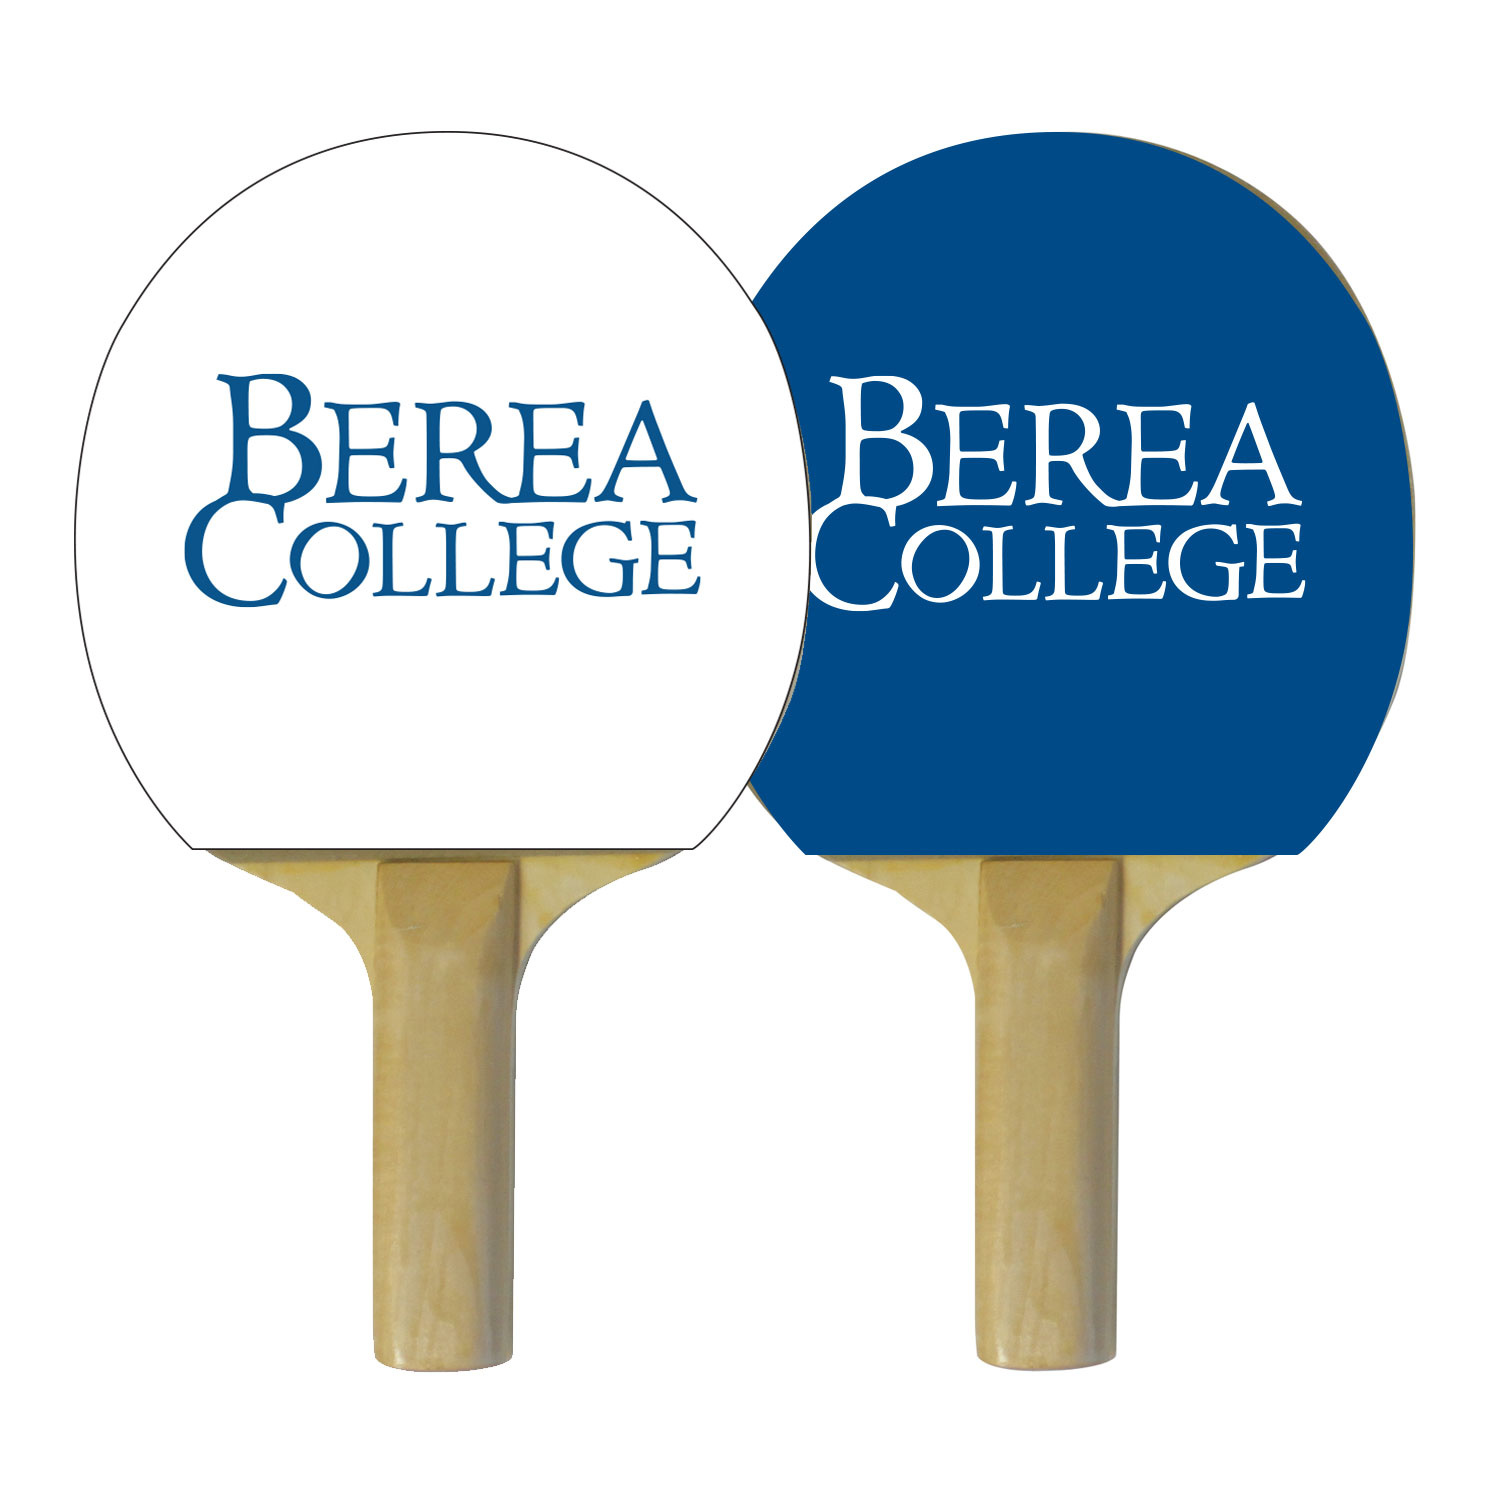 Ping Pong Paddle with Berea College logo*-2